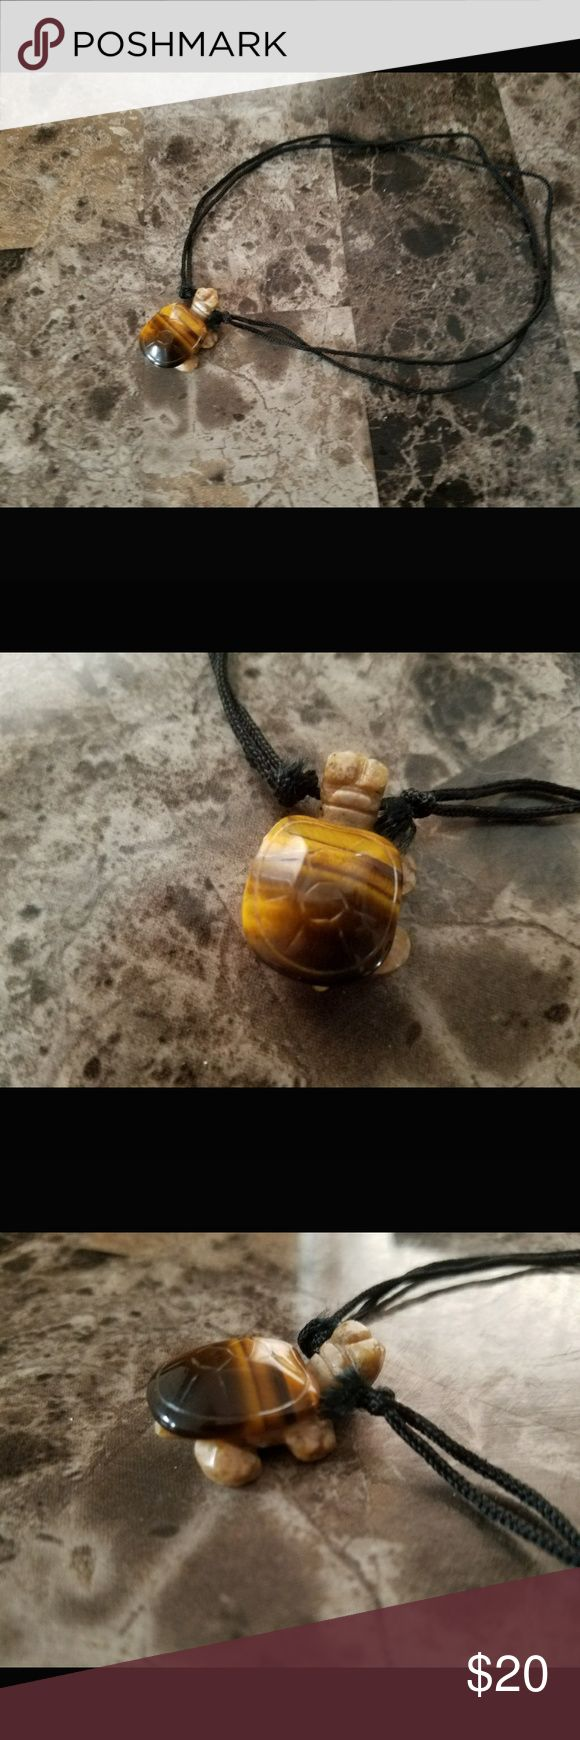 """Stone turtle necklace Never worn. Stone turtle necklace. Not remembering which kind of stone it is, but very cute! Is kept on a single string that is tied into knots on itself so you can move the knots from 15"""" or longer. Not hot topic. Hot Topic Jewelry Necklaces"""